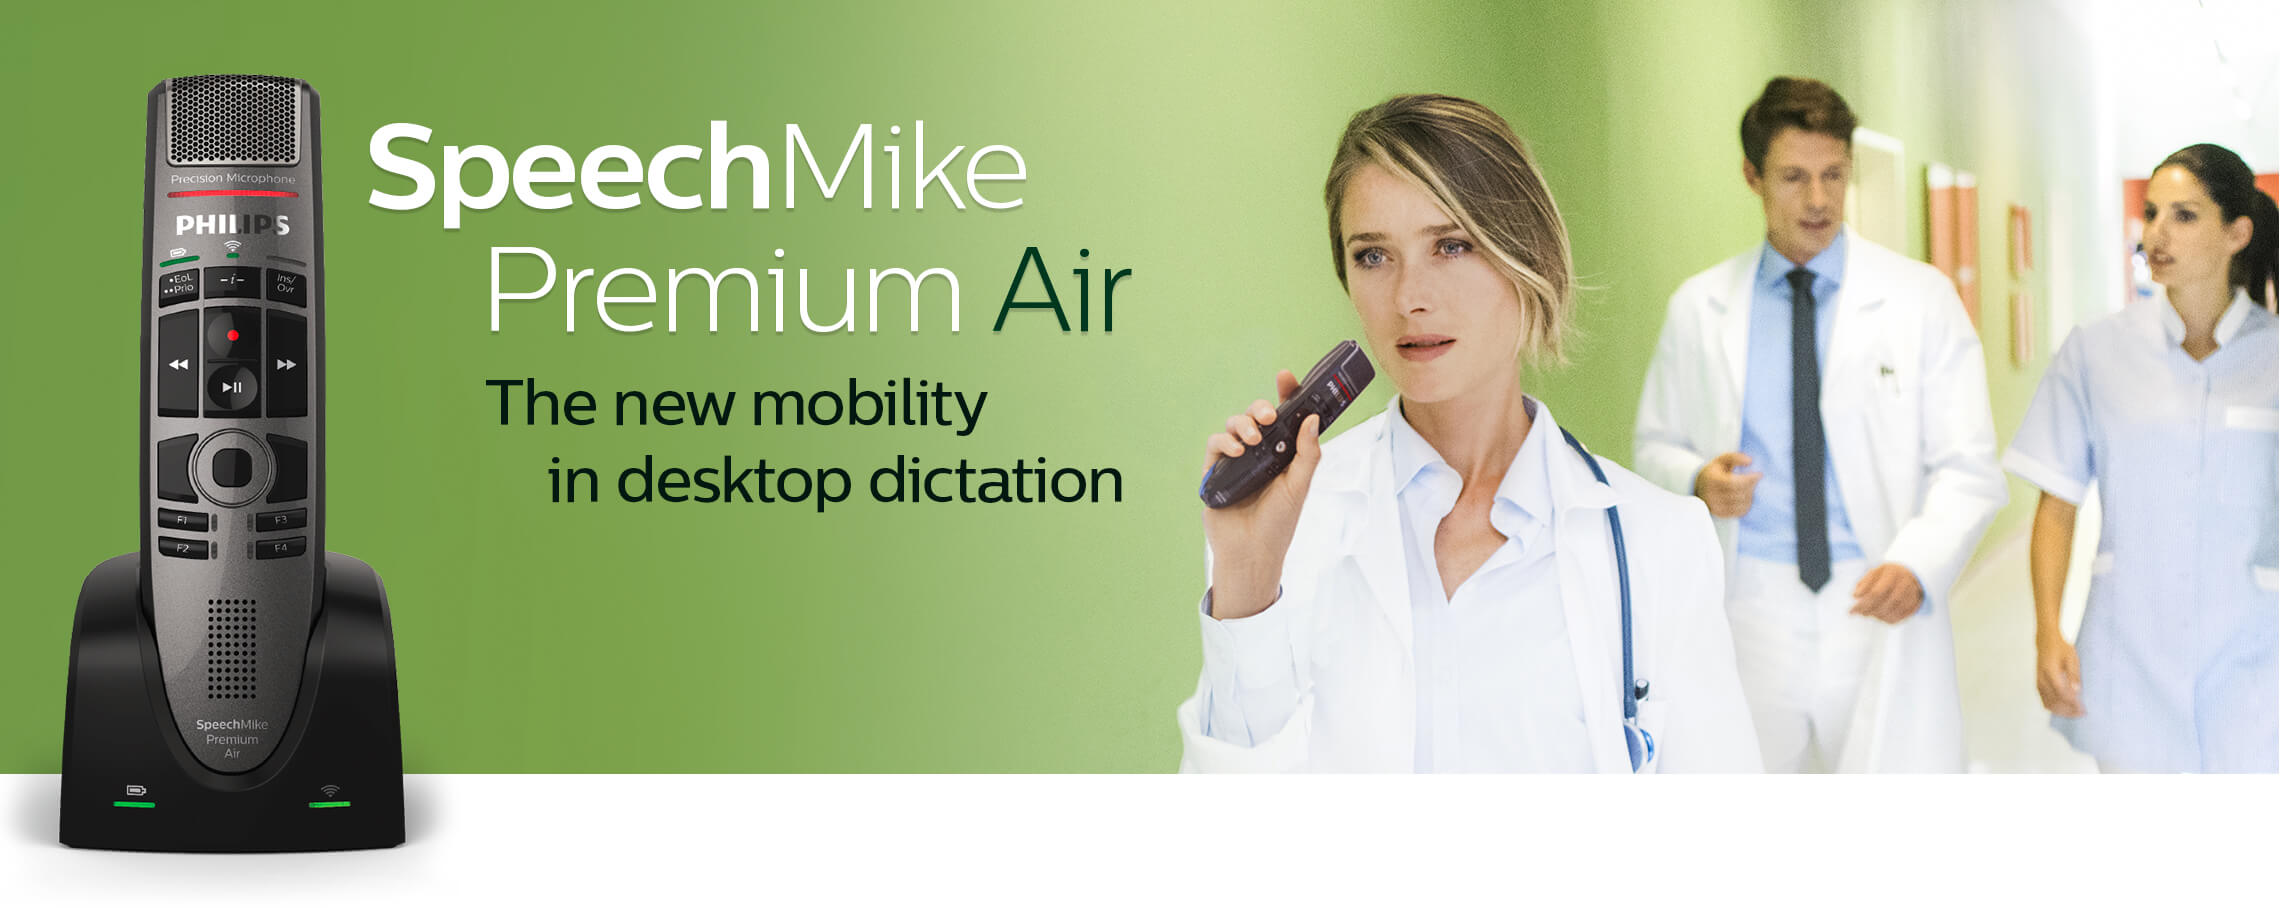 SpeechMike PremiumAir - The new mobility in desktop dictation